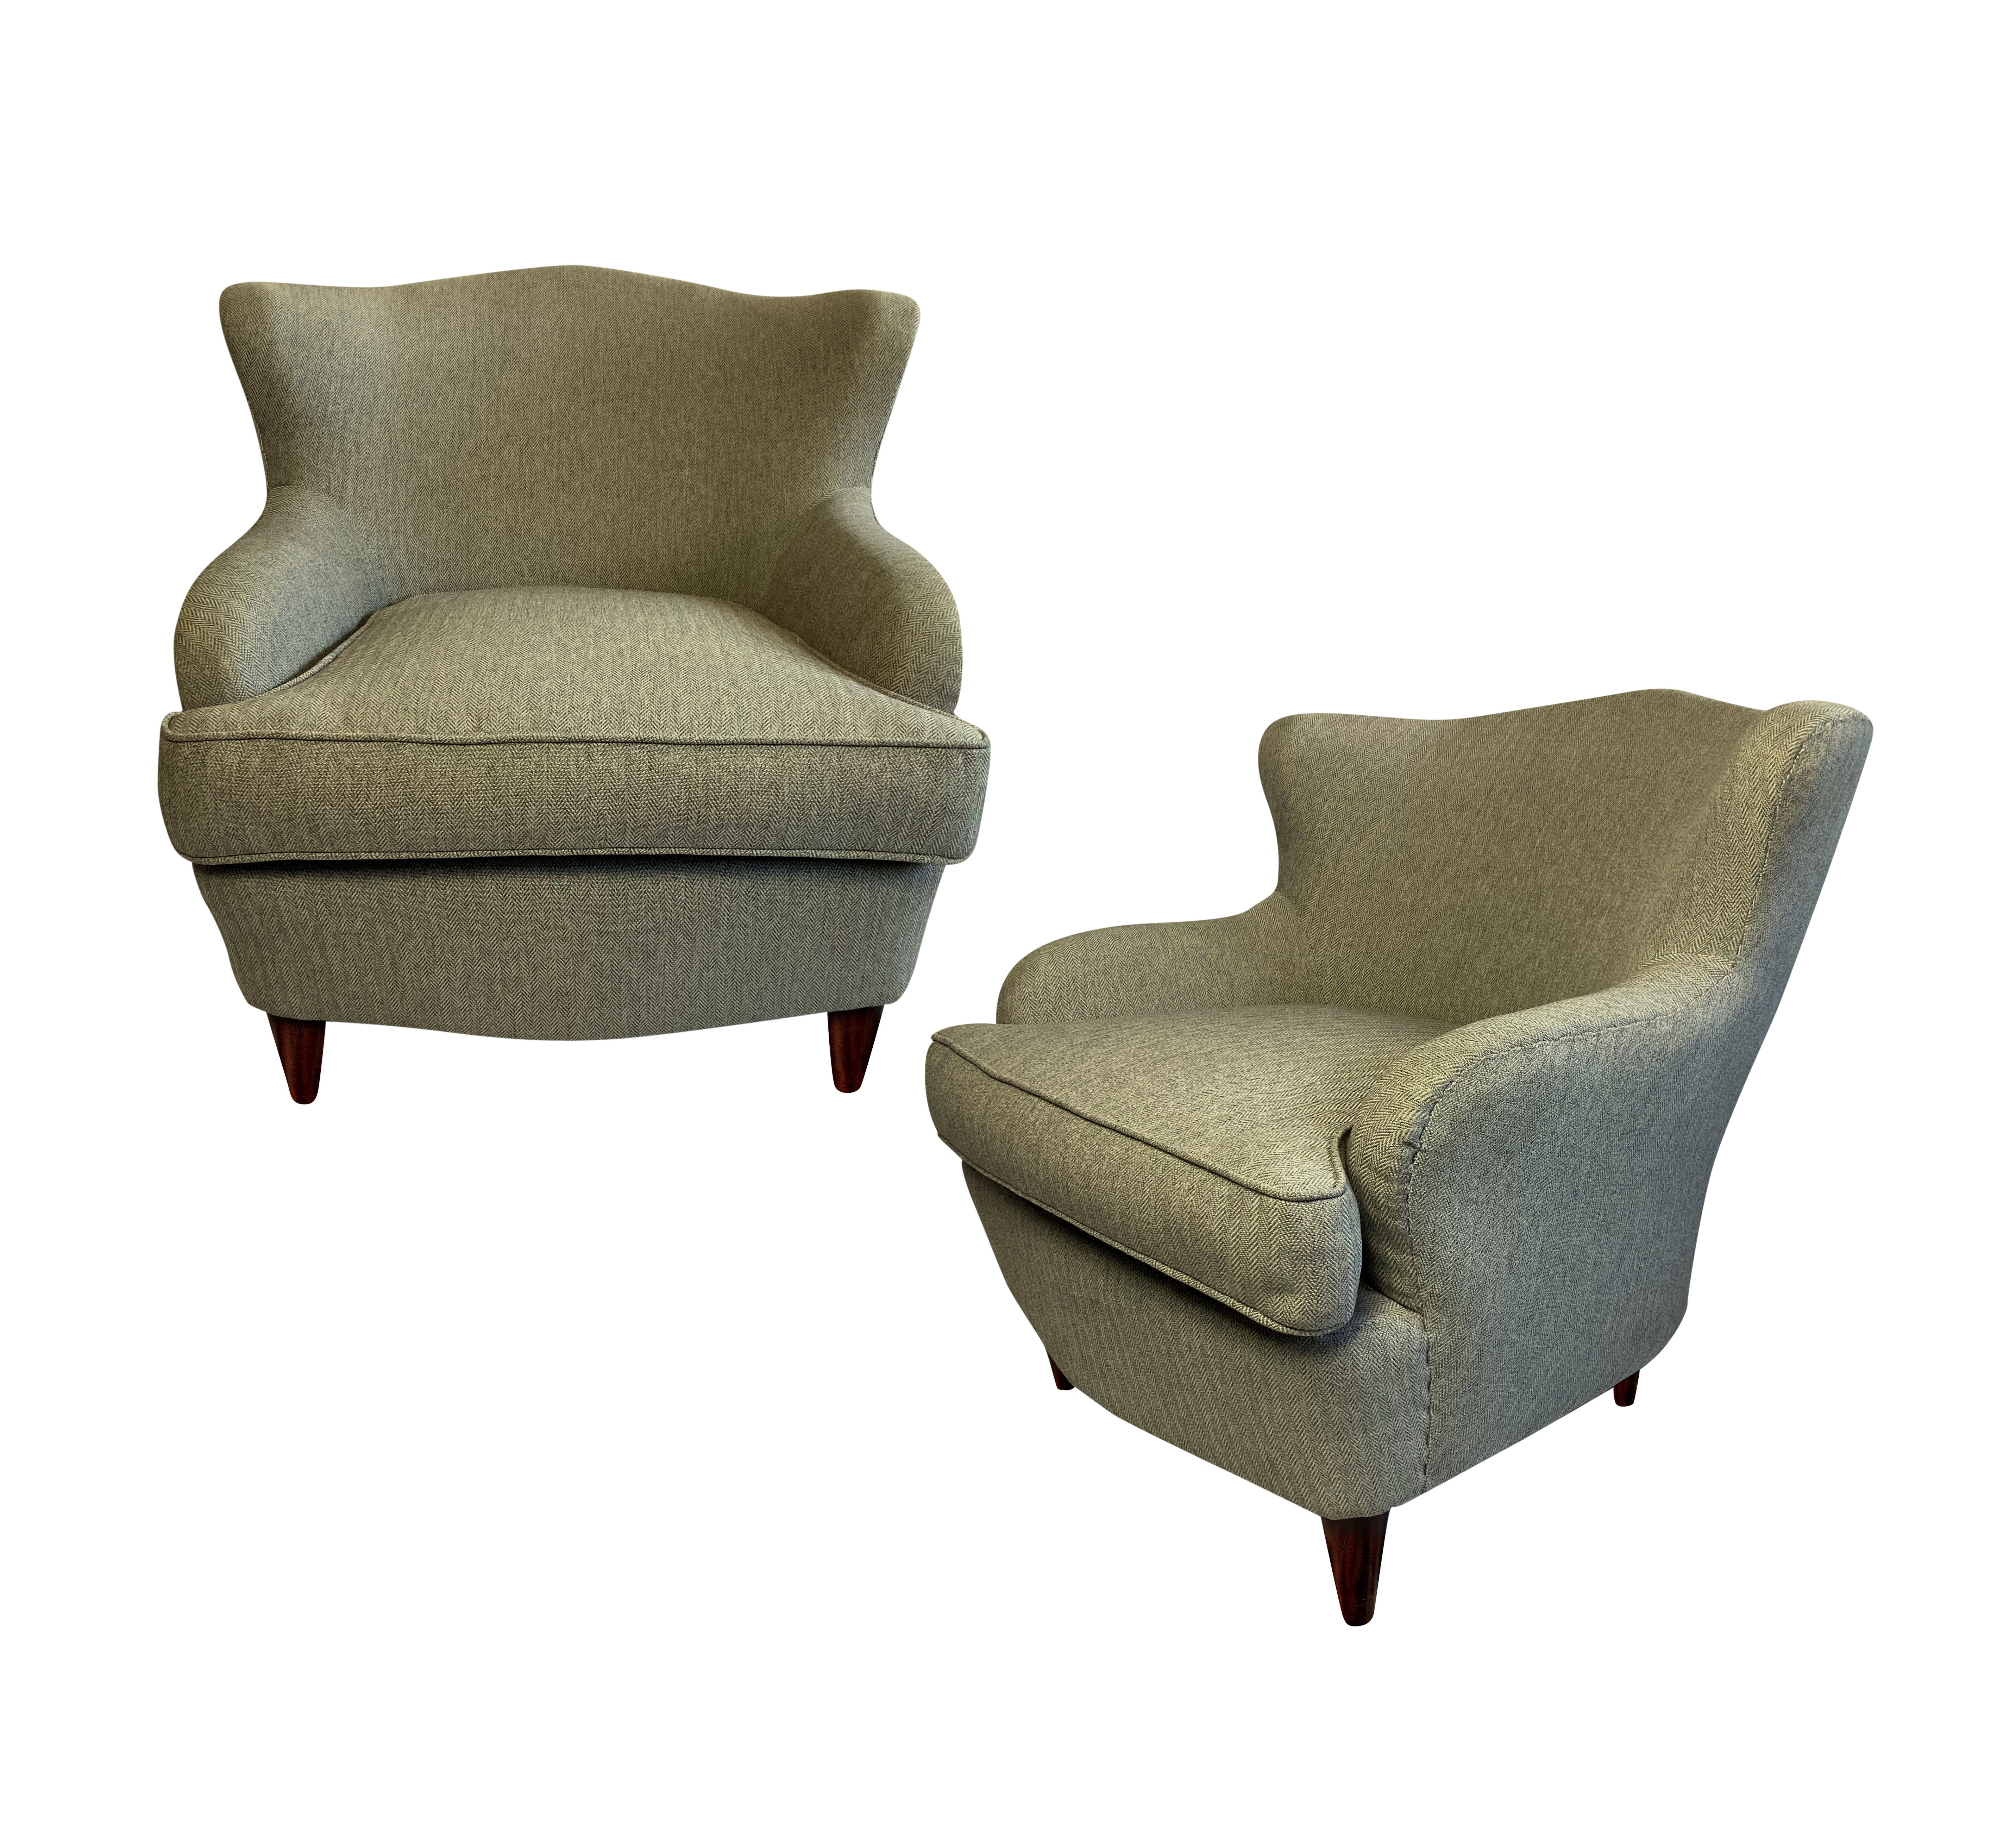 A PAIR OF COCKTAIL CHAIRS BY ISA